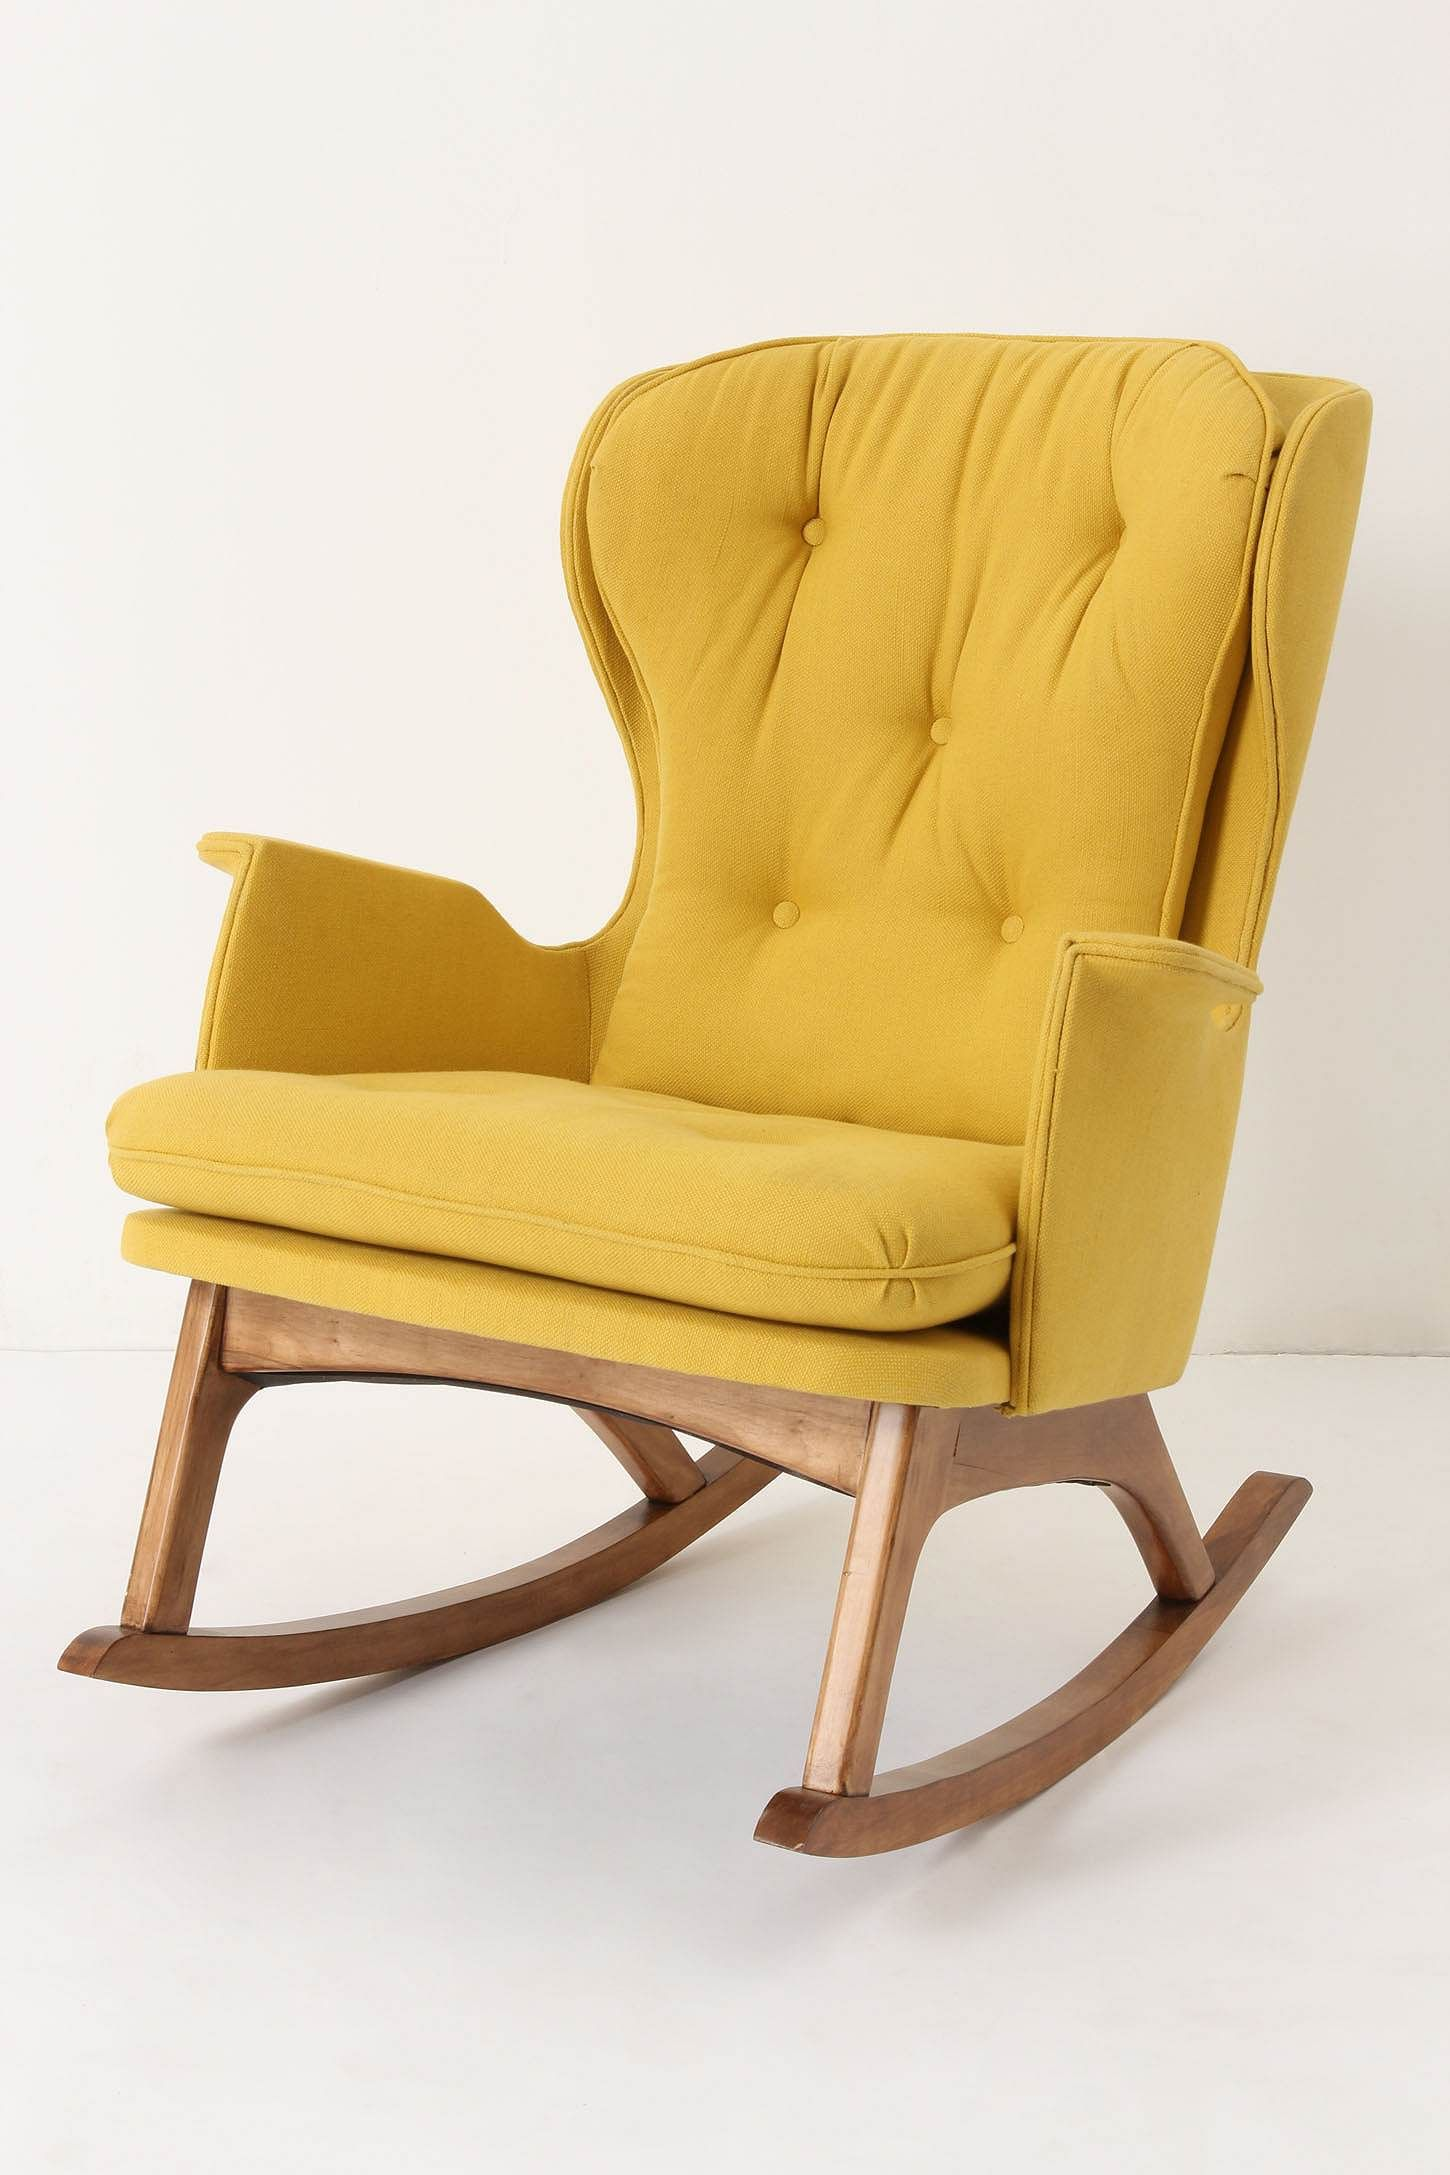 une chaise bascule jaune assise pinterest chaises bascule et fauteuils. Black Bedroom Furniture Sets. Home Design Ideas